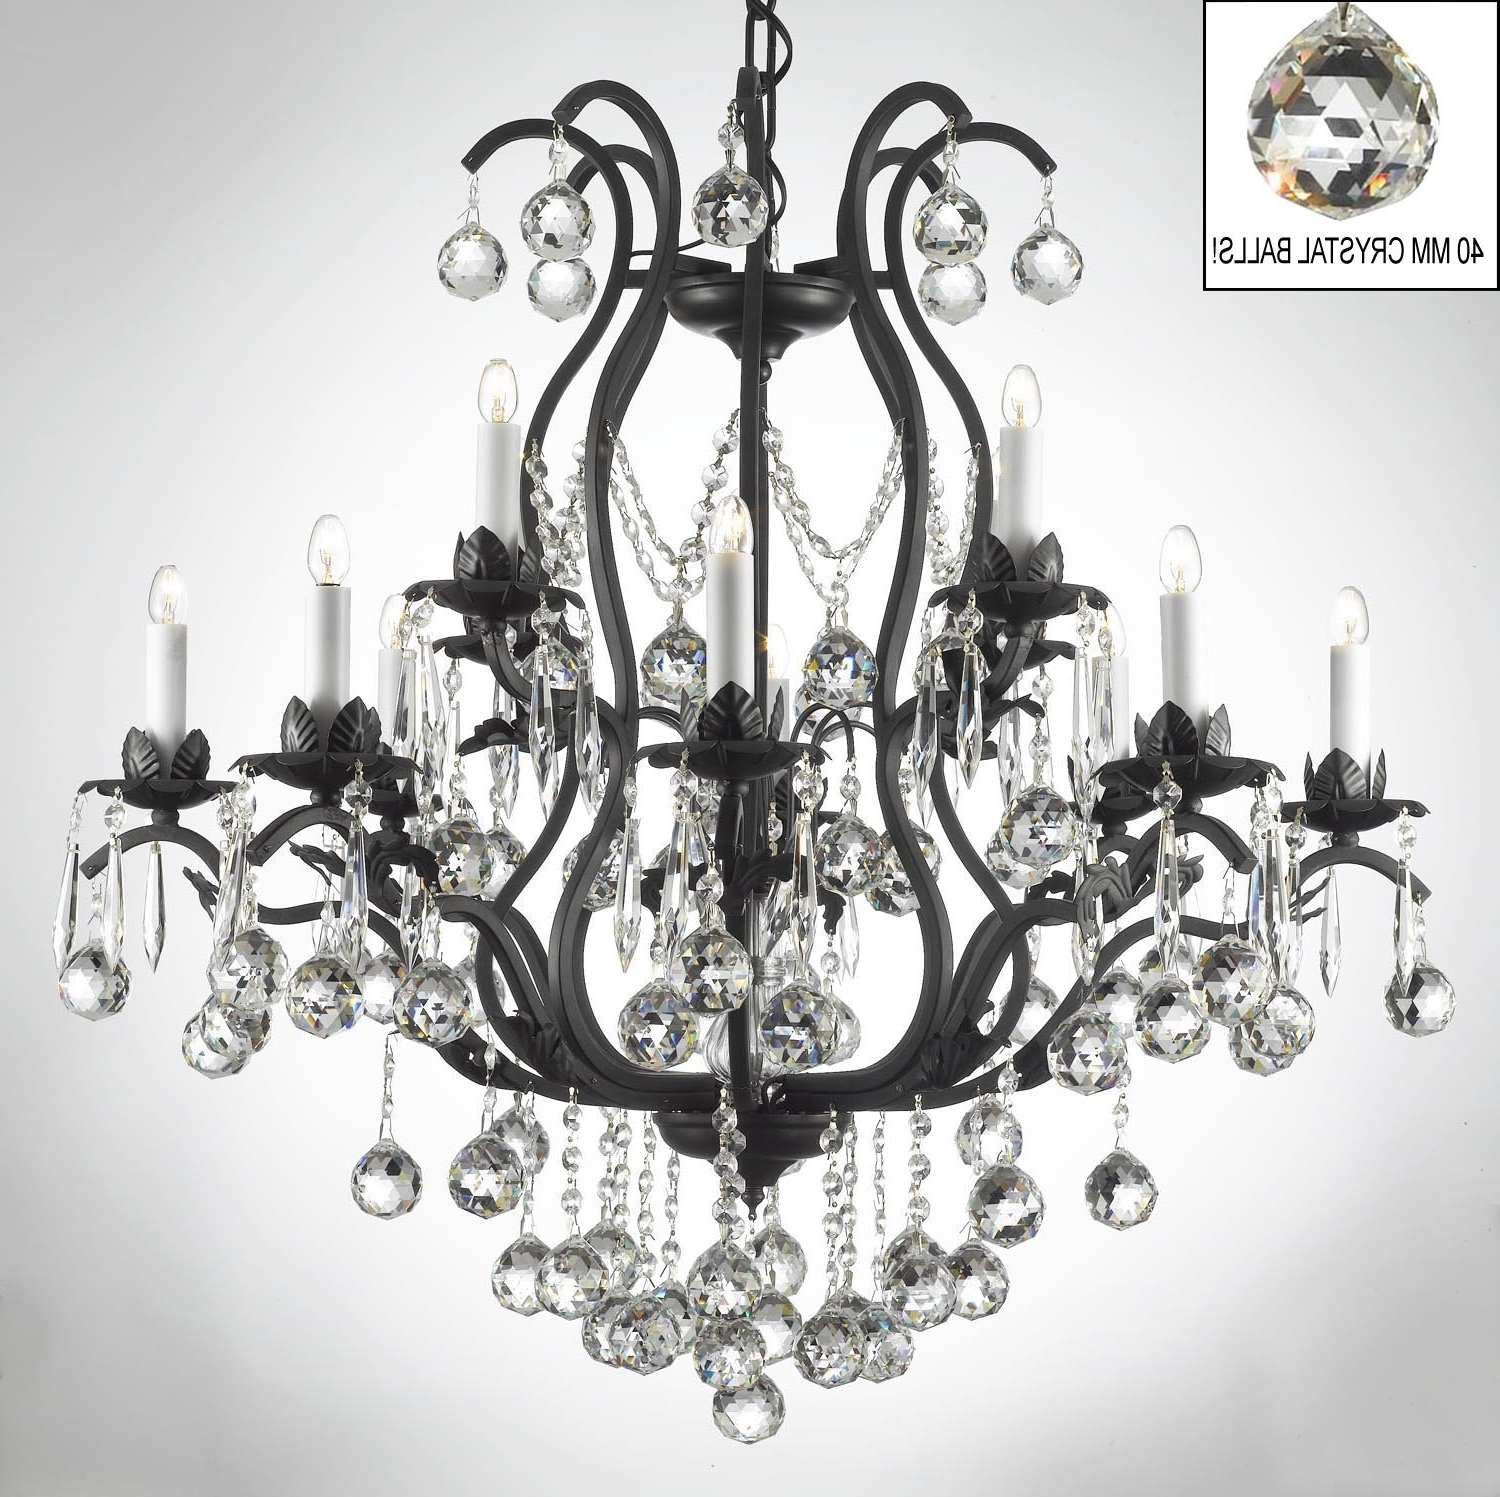 Metal Ball Candle Chandeliers For Popular Wrought Iron Candle Chandelier Chandeliers Black With Crystals Large (View 5 of 20)